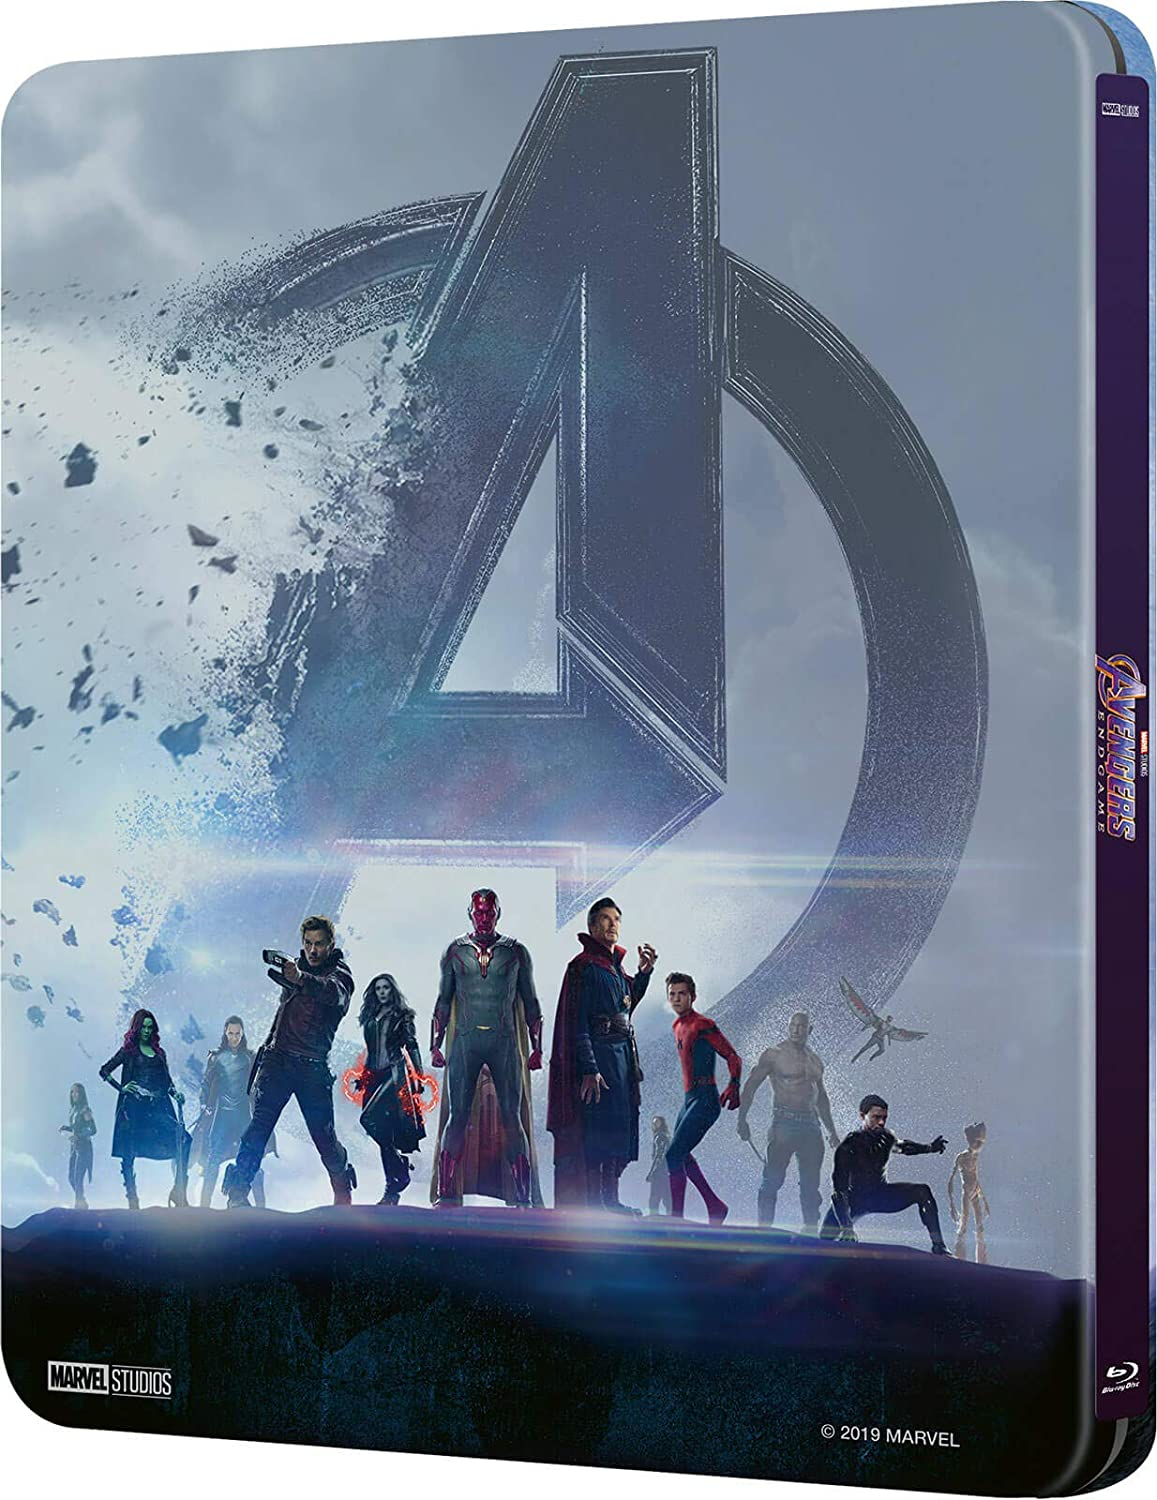 Avengers Endgame 3D Limited Edition Steelbook / Import / Includes 2D Region Free Blu Ray: Amazon.es: Cine y Series TV